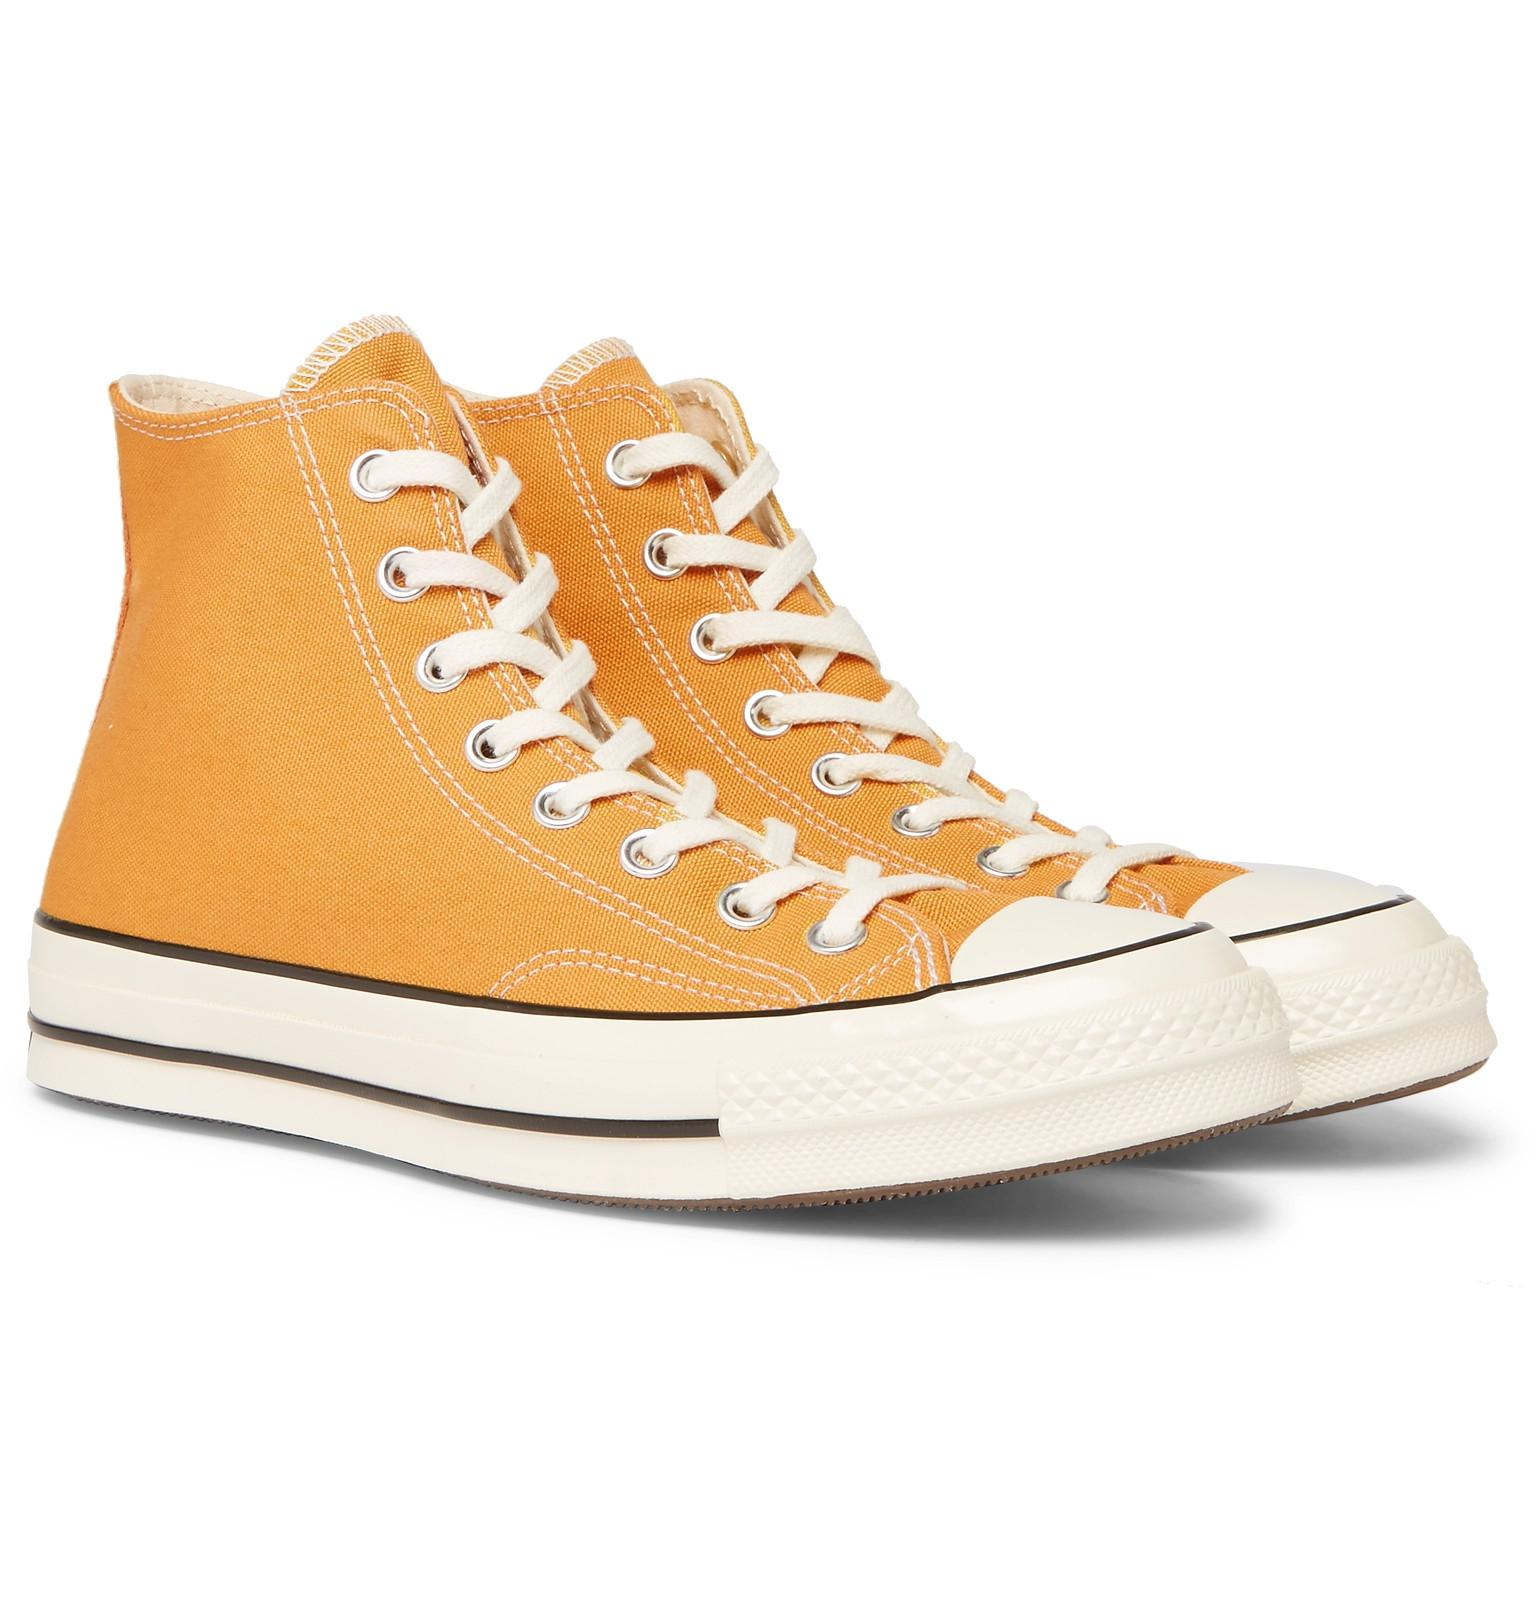 Lyst - Converse Chuck Taylor 1970s Hi in Yellow for Men - Save 69% 3a3c3d5ce